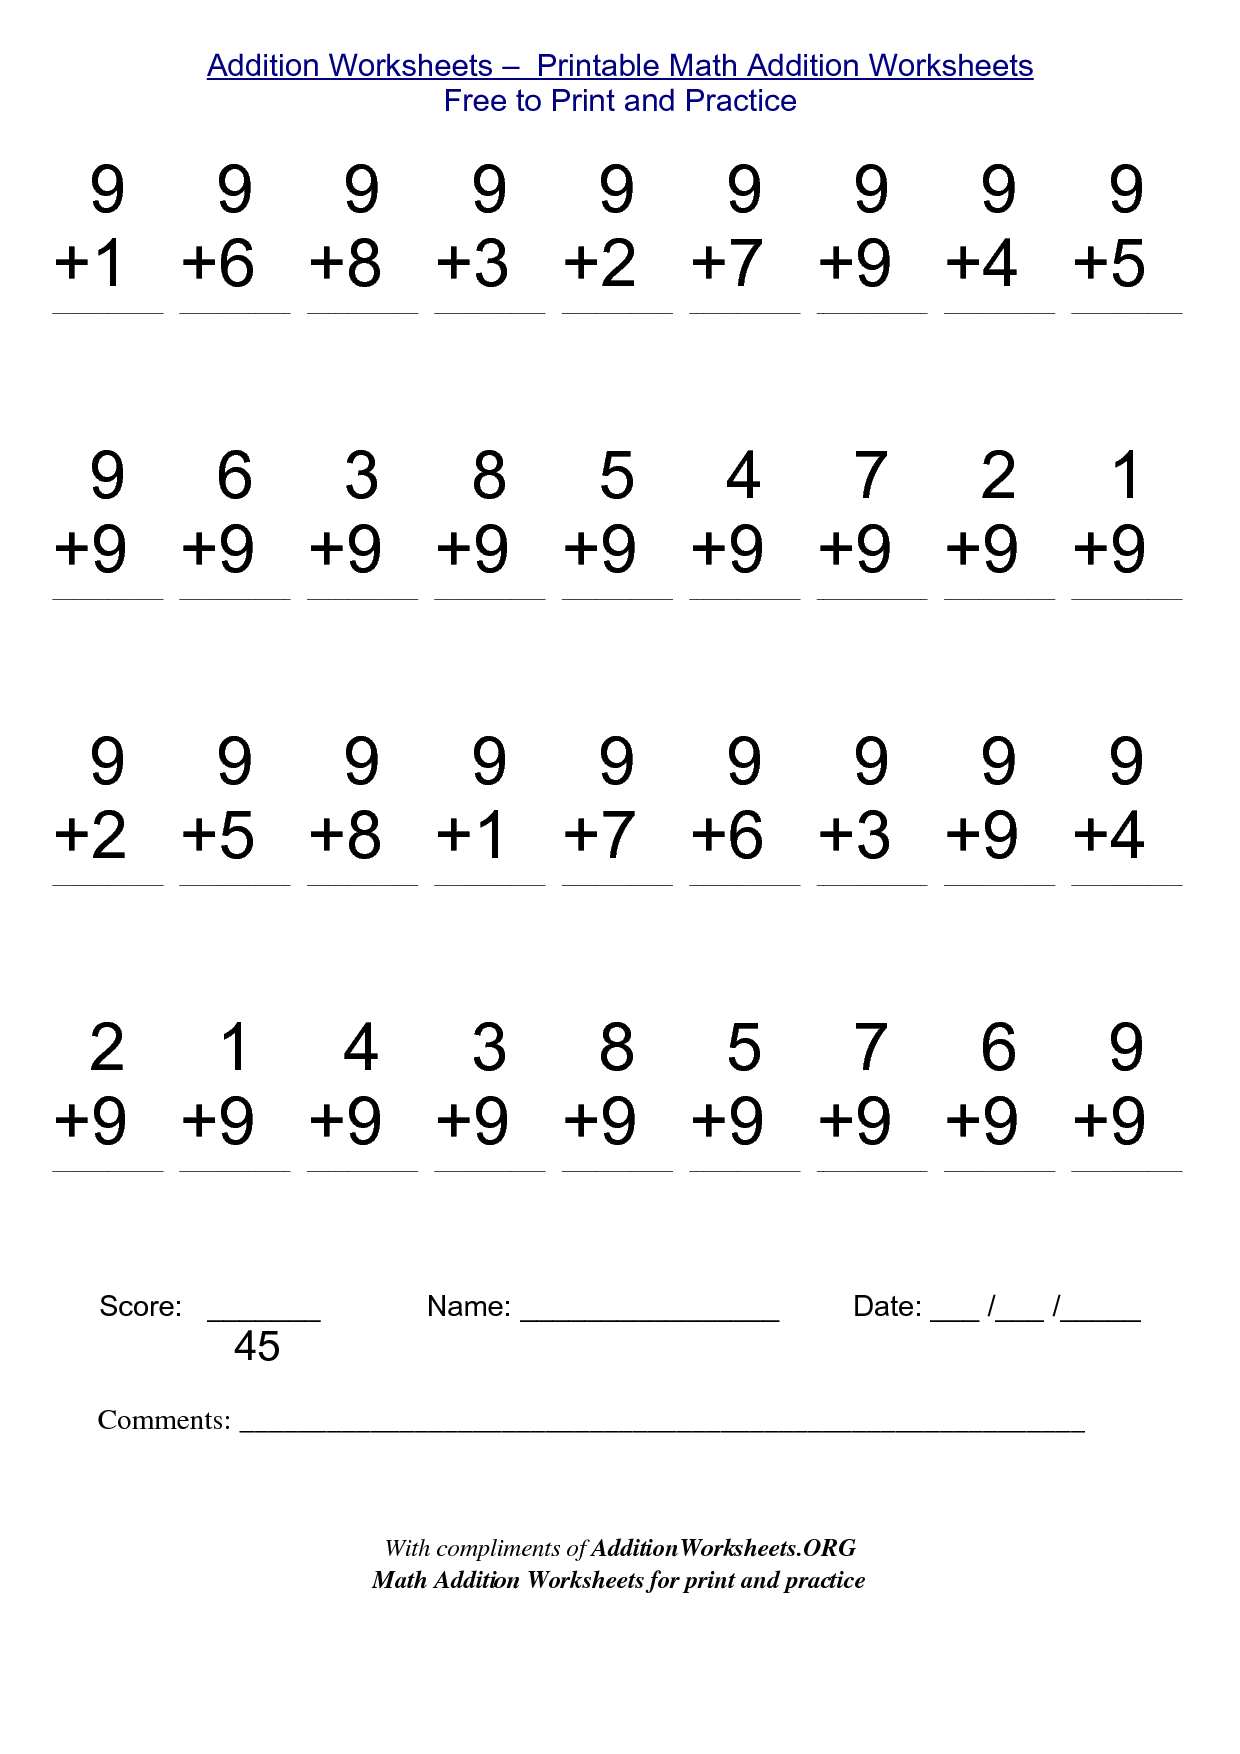 Worksheet Printable 1st Grade Math Worksheets 1st grade math worksheets printable addition intrepidpath 4 best images of printable